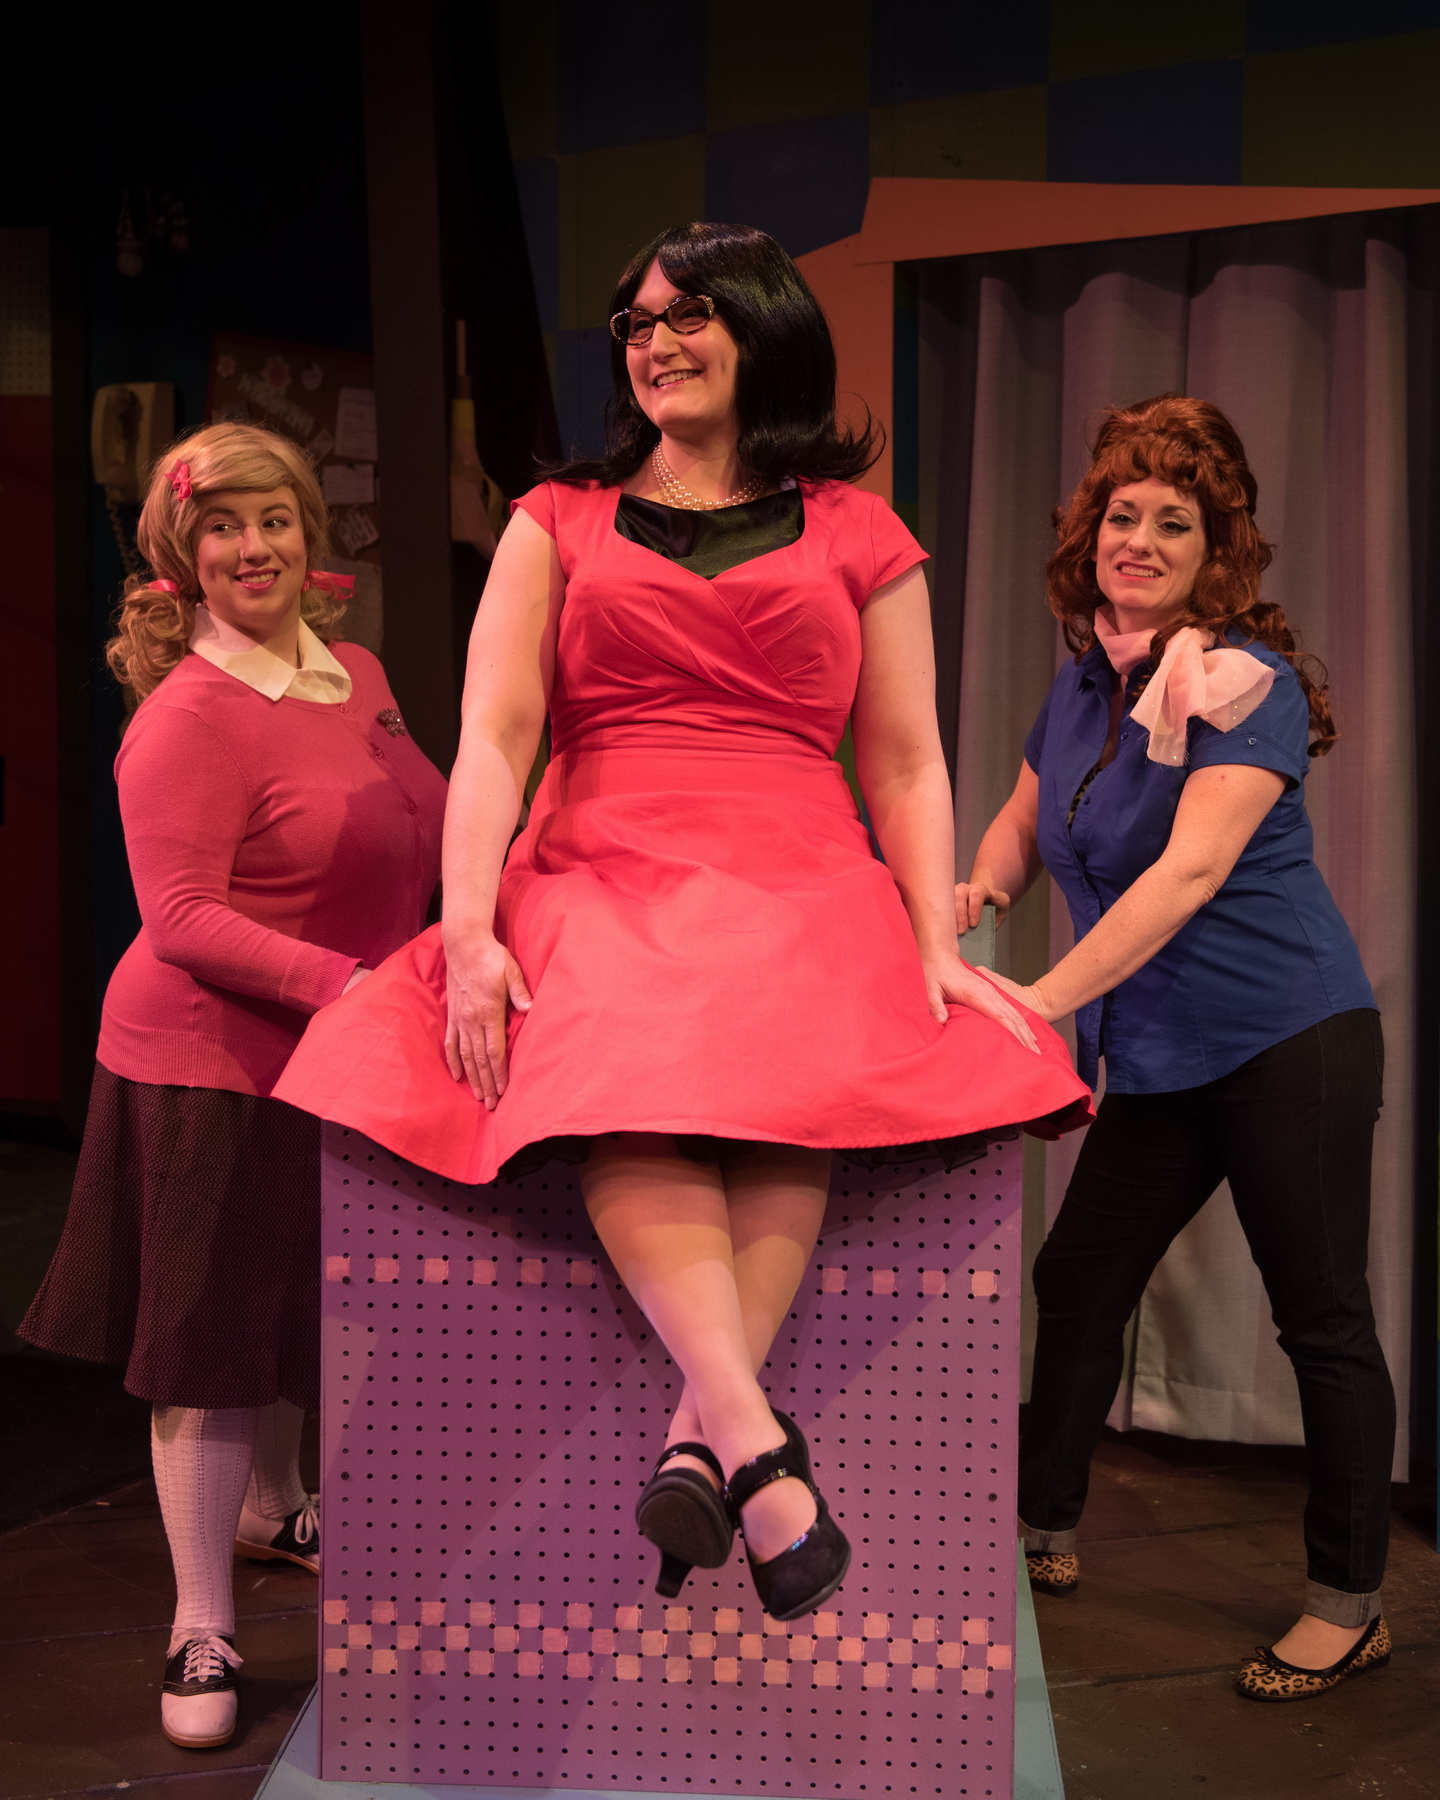 Ellie St. Cyr as Cindy, Kate Klotzbach as Dee Dee and Eileen Canepari as Marge